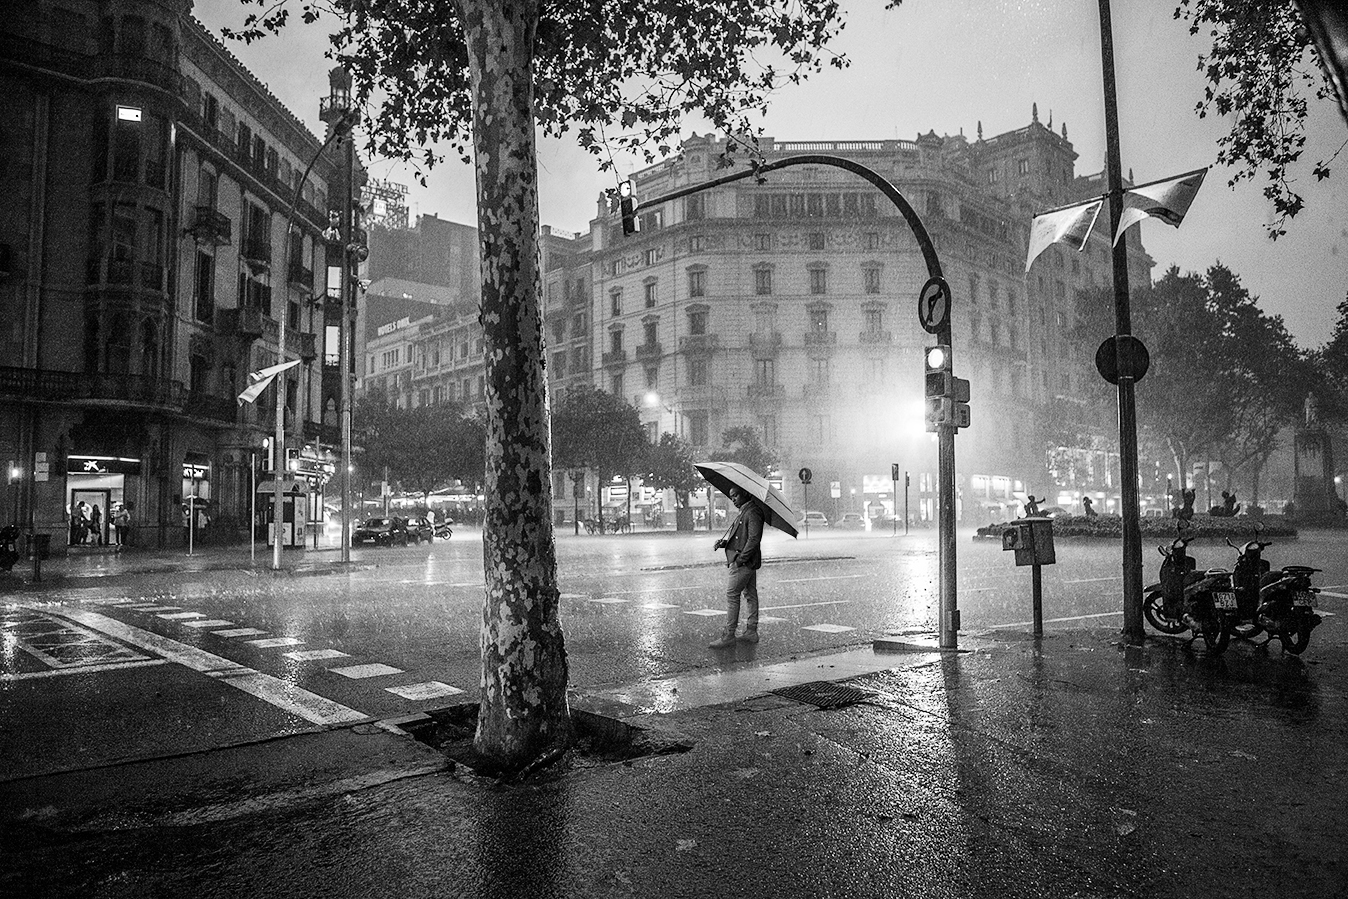 Spain_Barcelona_2012_Rain__EricBlack_MG_0013_2c